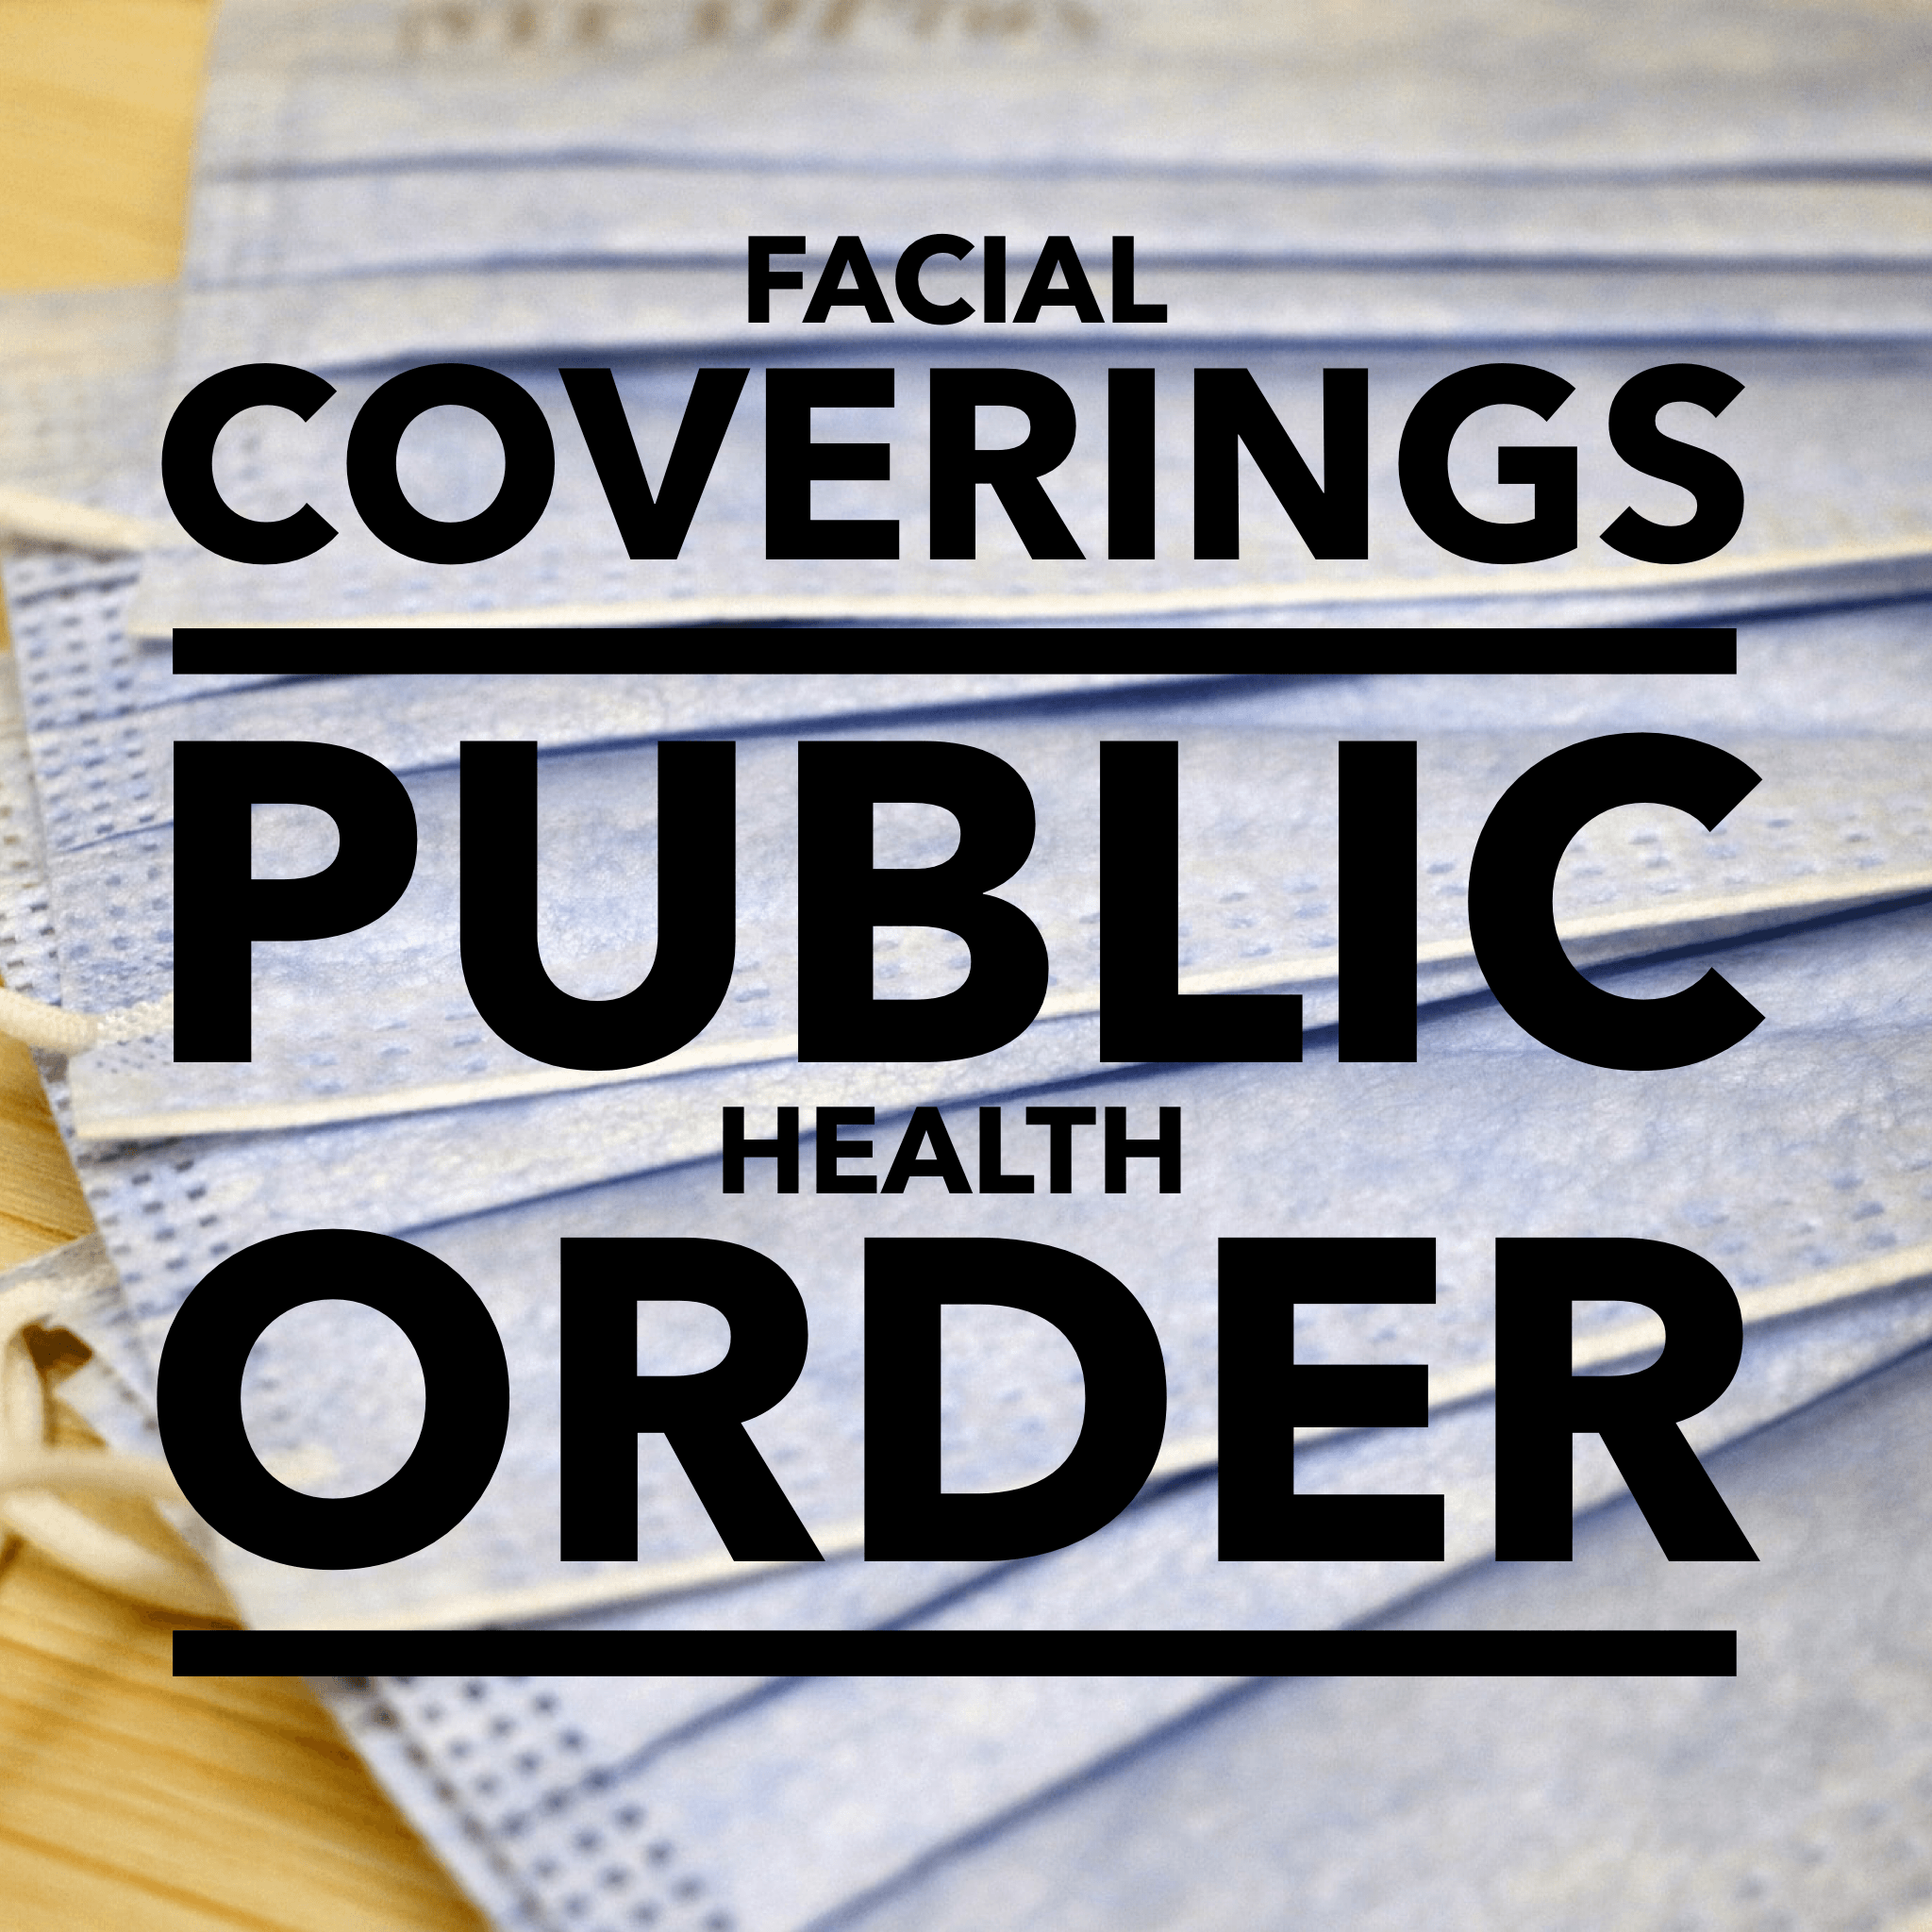 Facial Coverings Public Health Order